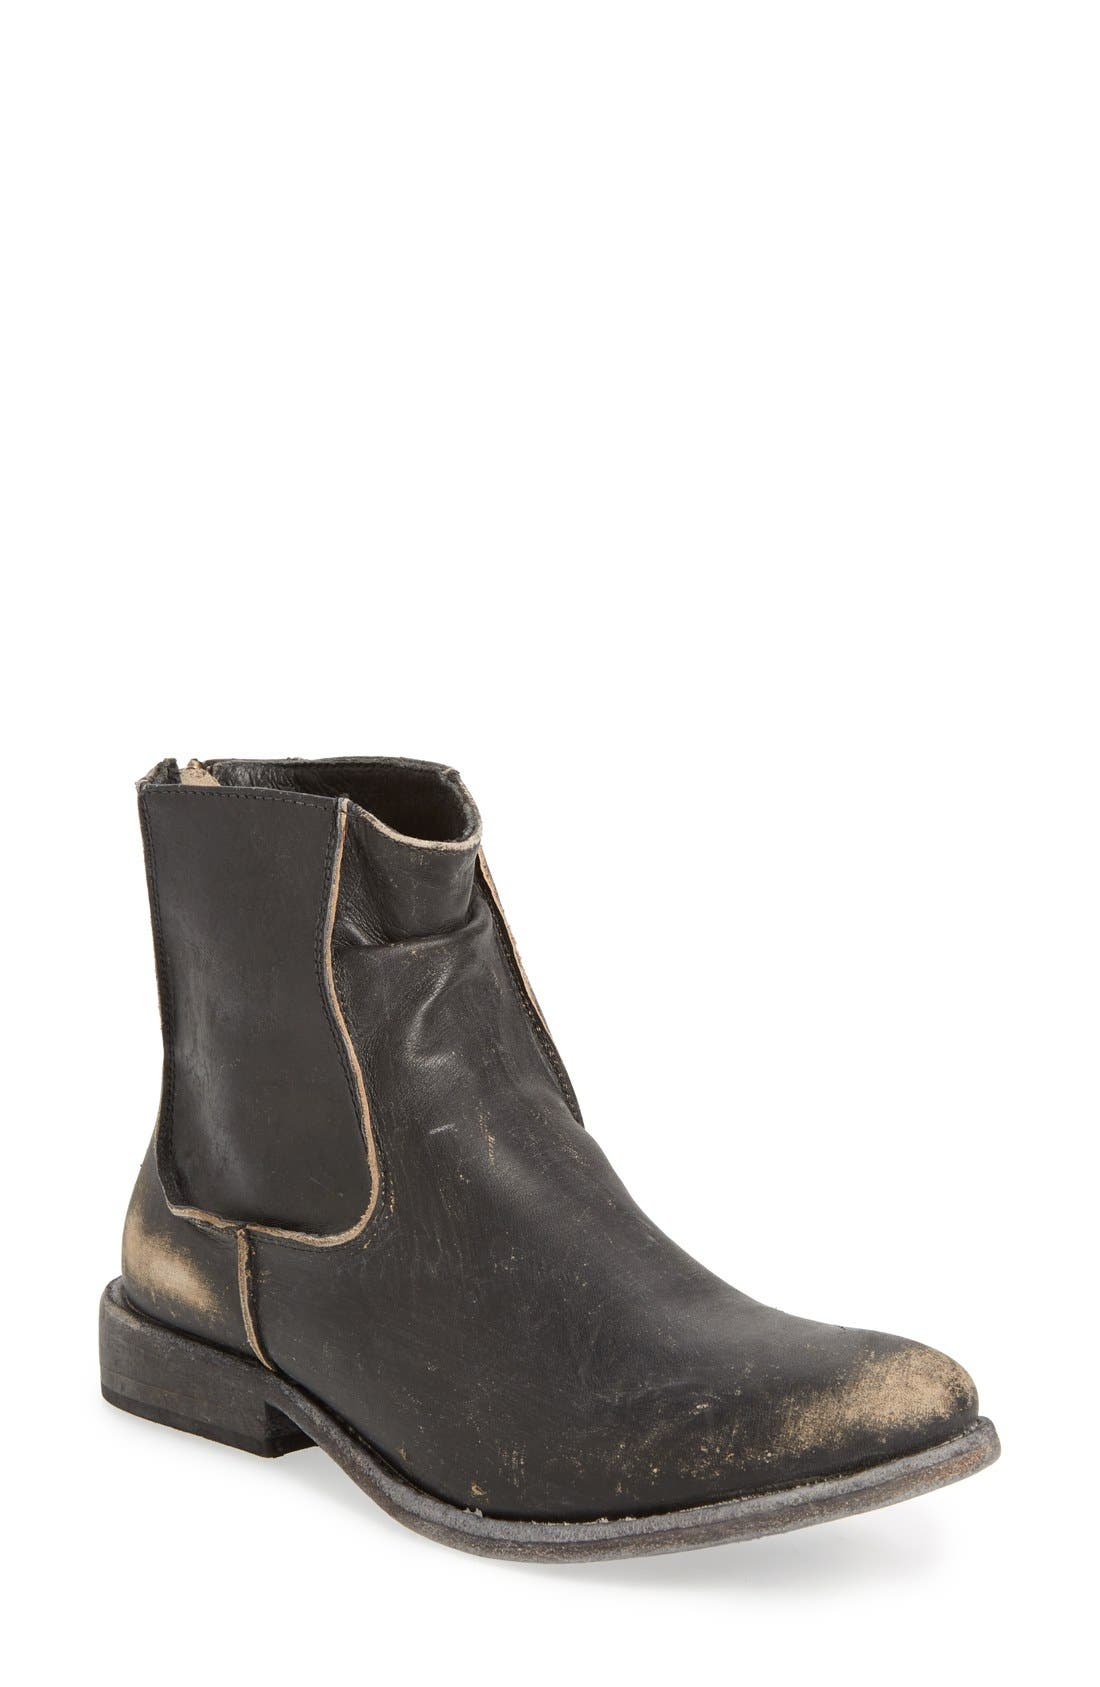 'Gerald' Distressed Bootie,                             Main thumbnail 1, color,